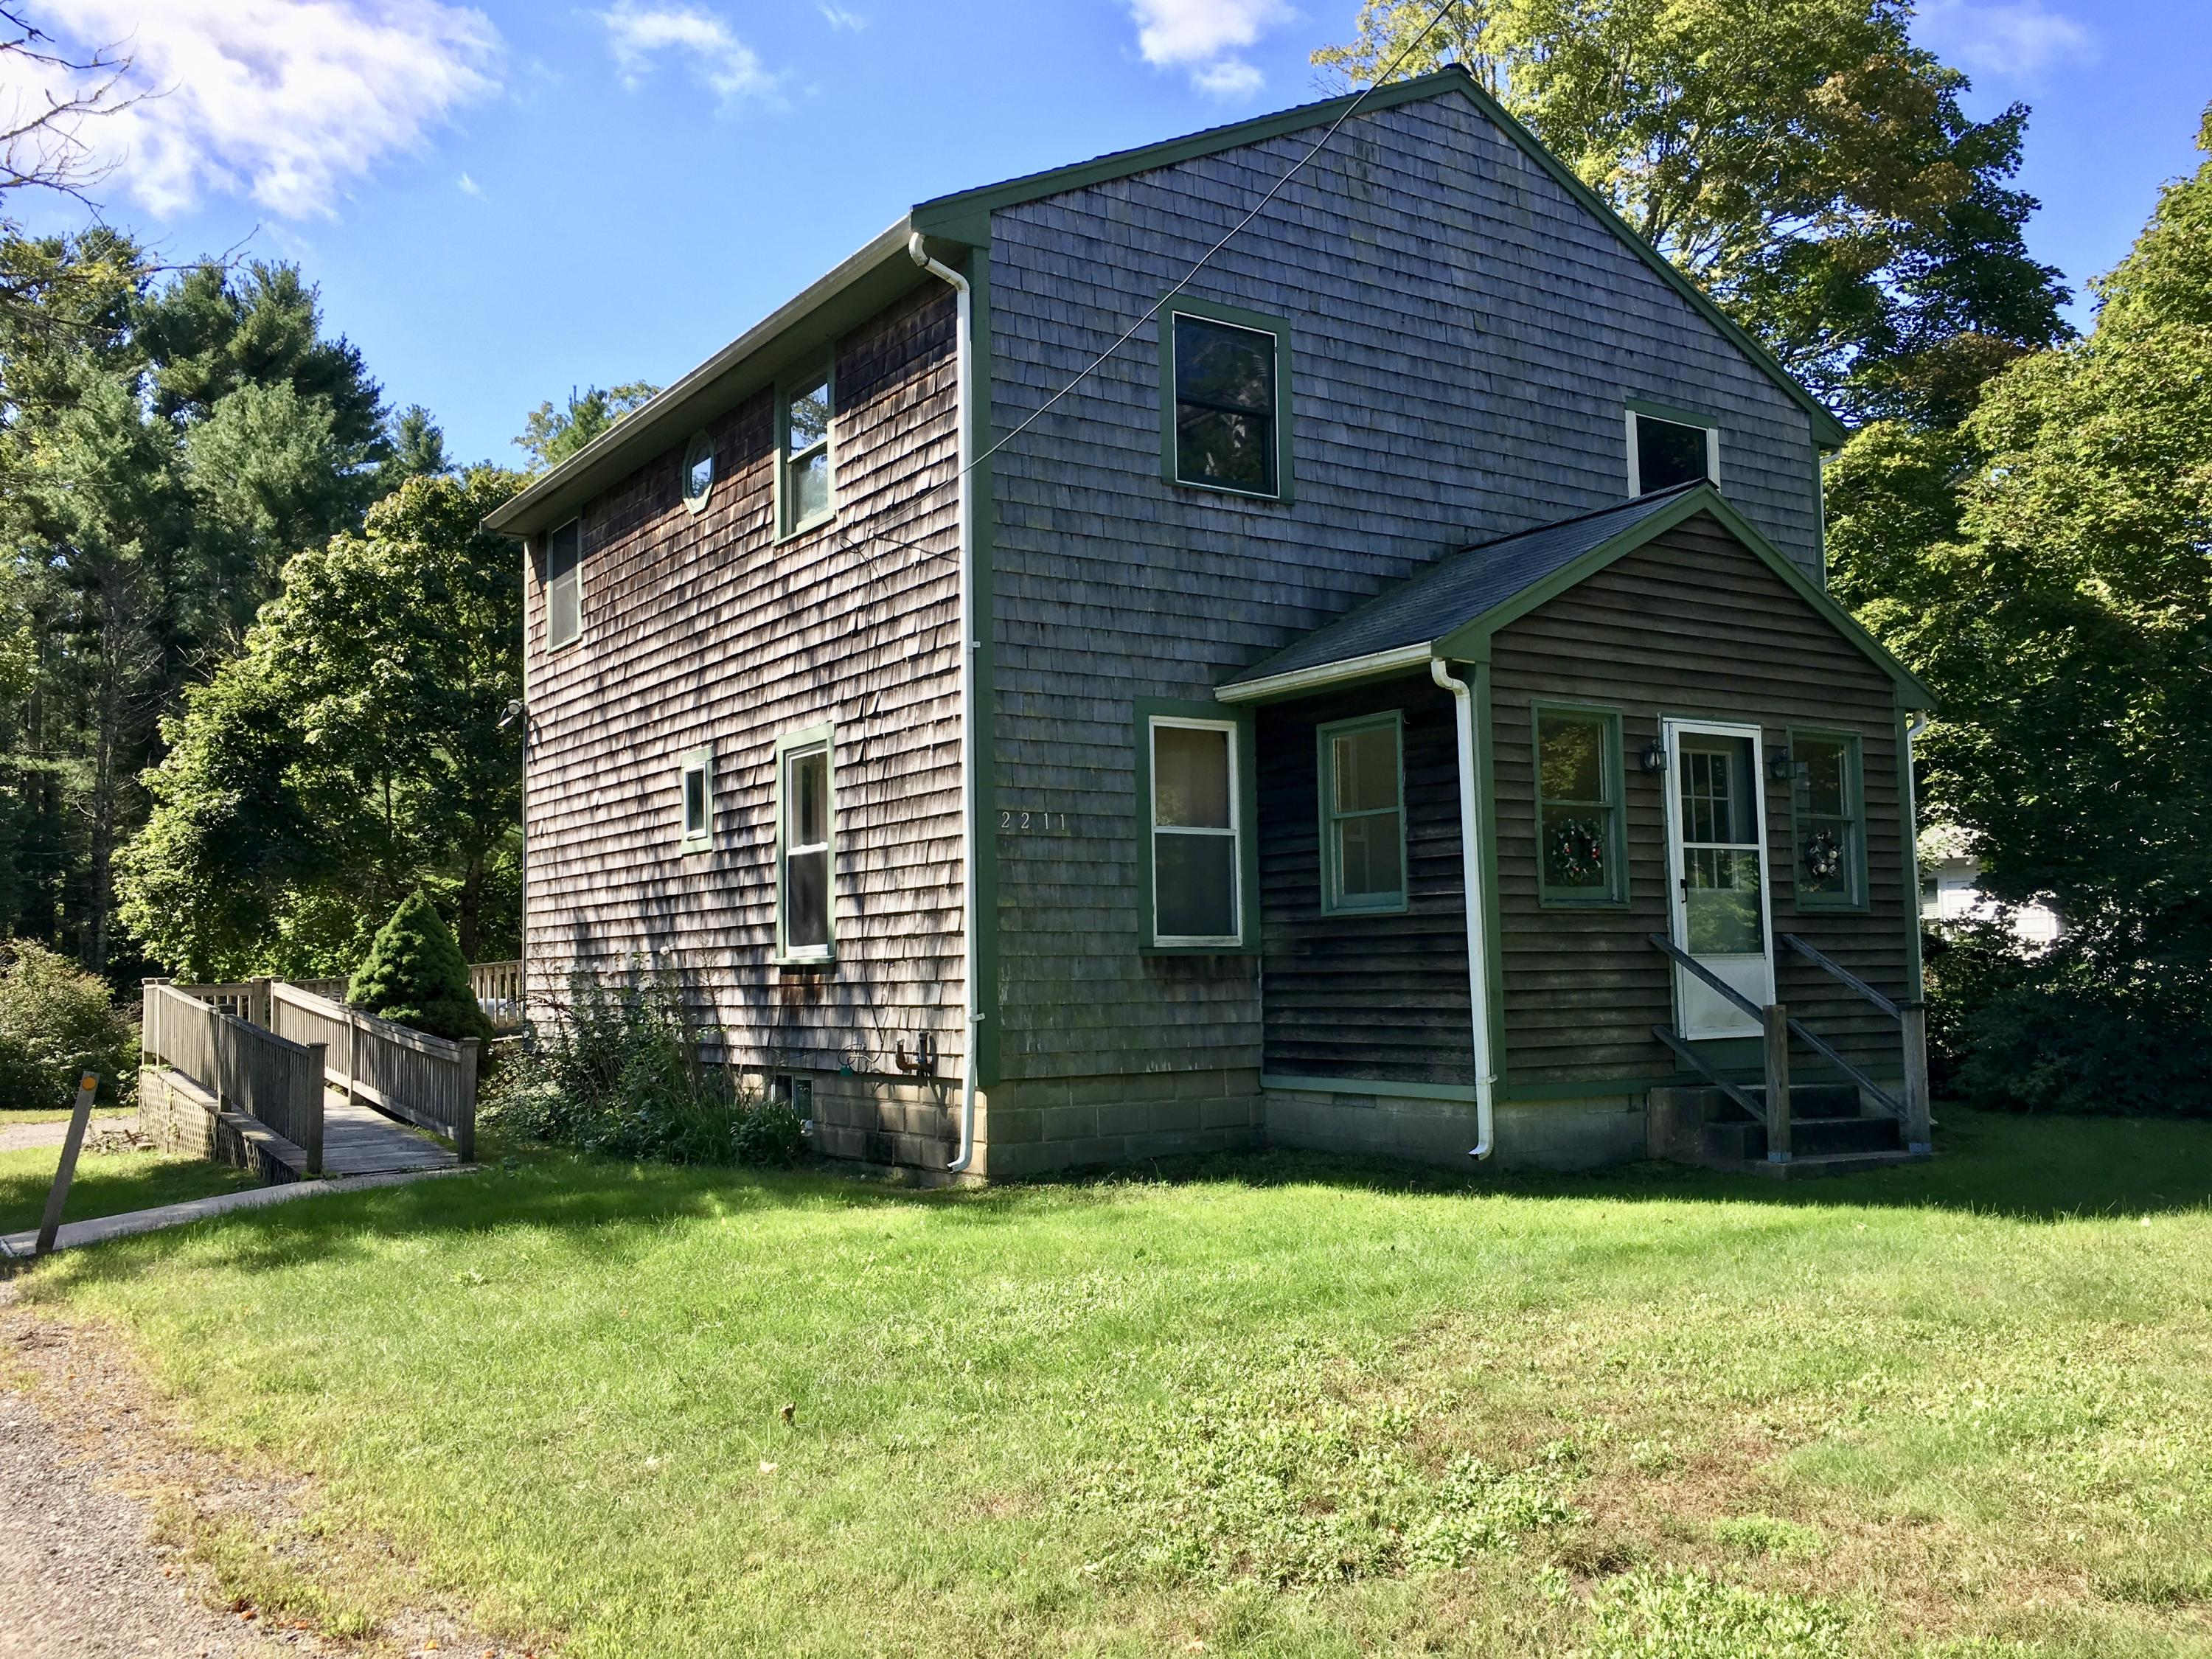 2211 Cranberry Hwy Highway, Wareham, Wareham, MA 02571